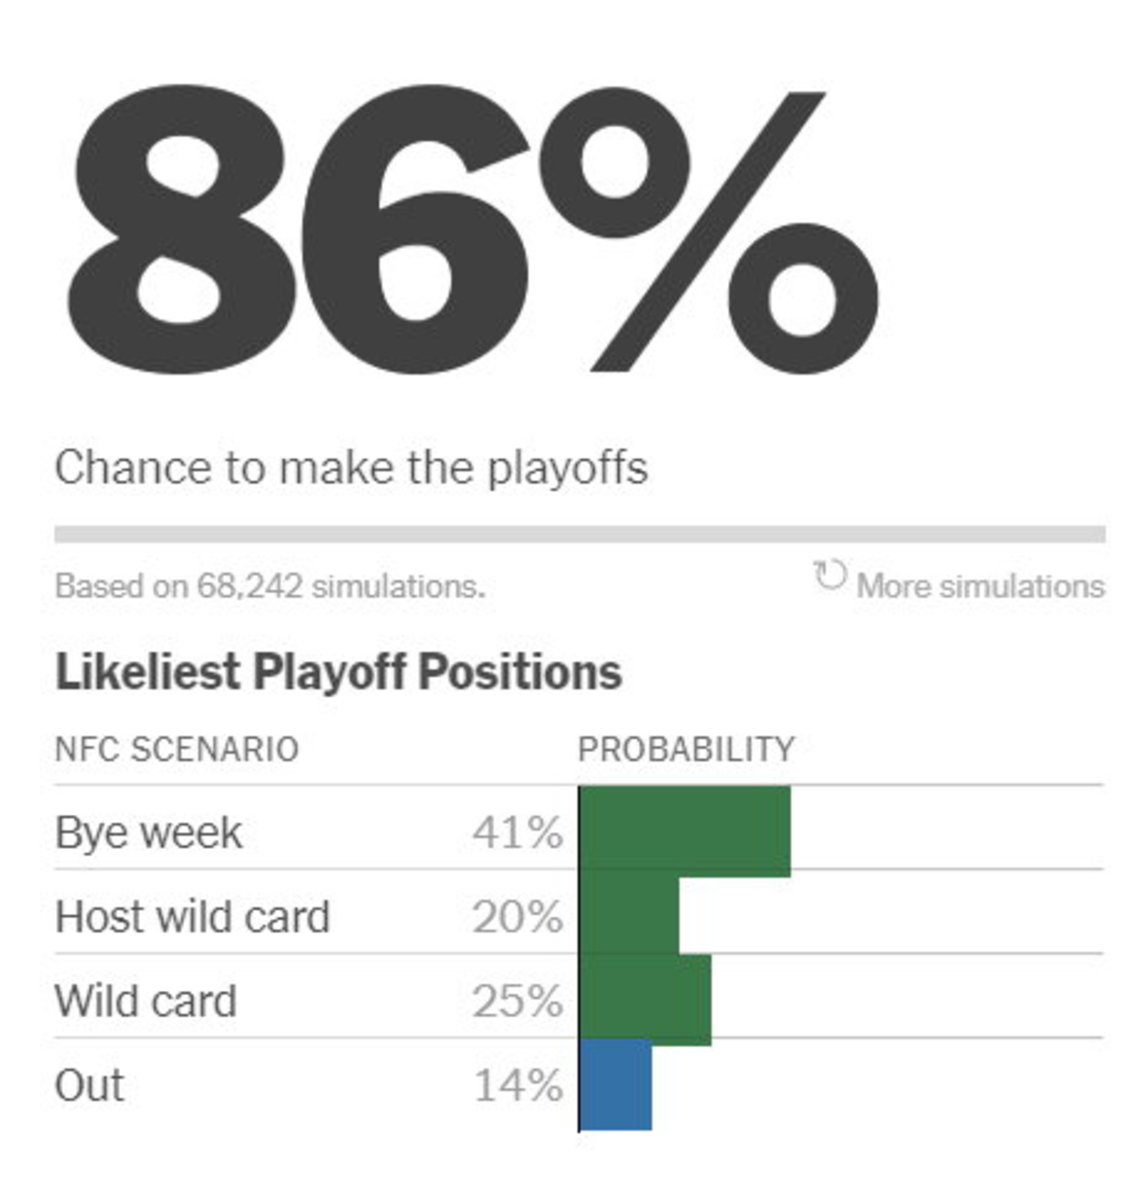 Courtesy: New York Times - NFL Playoff Interactive